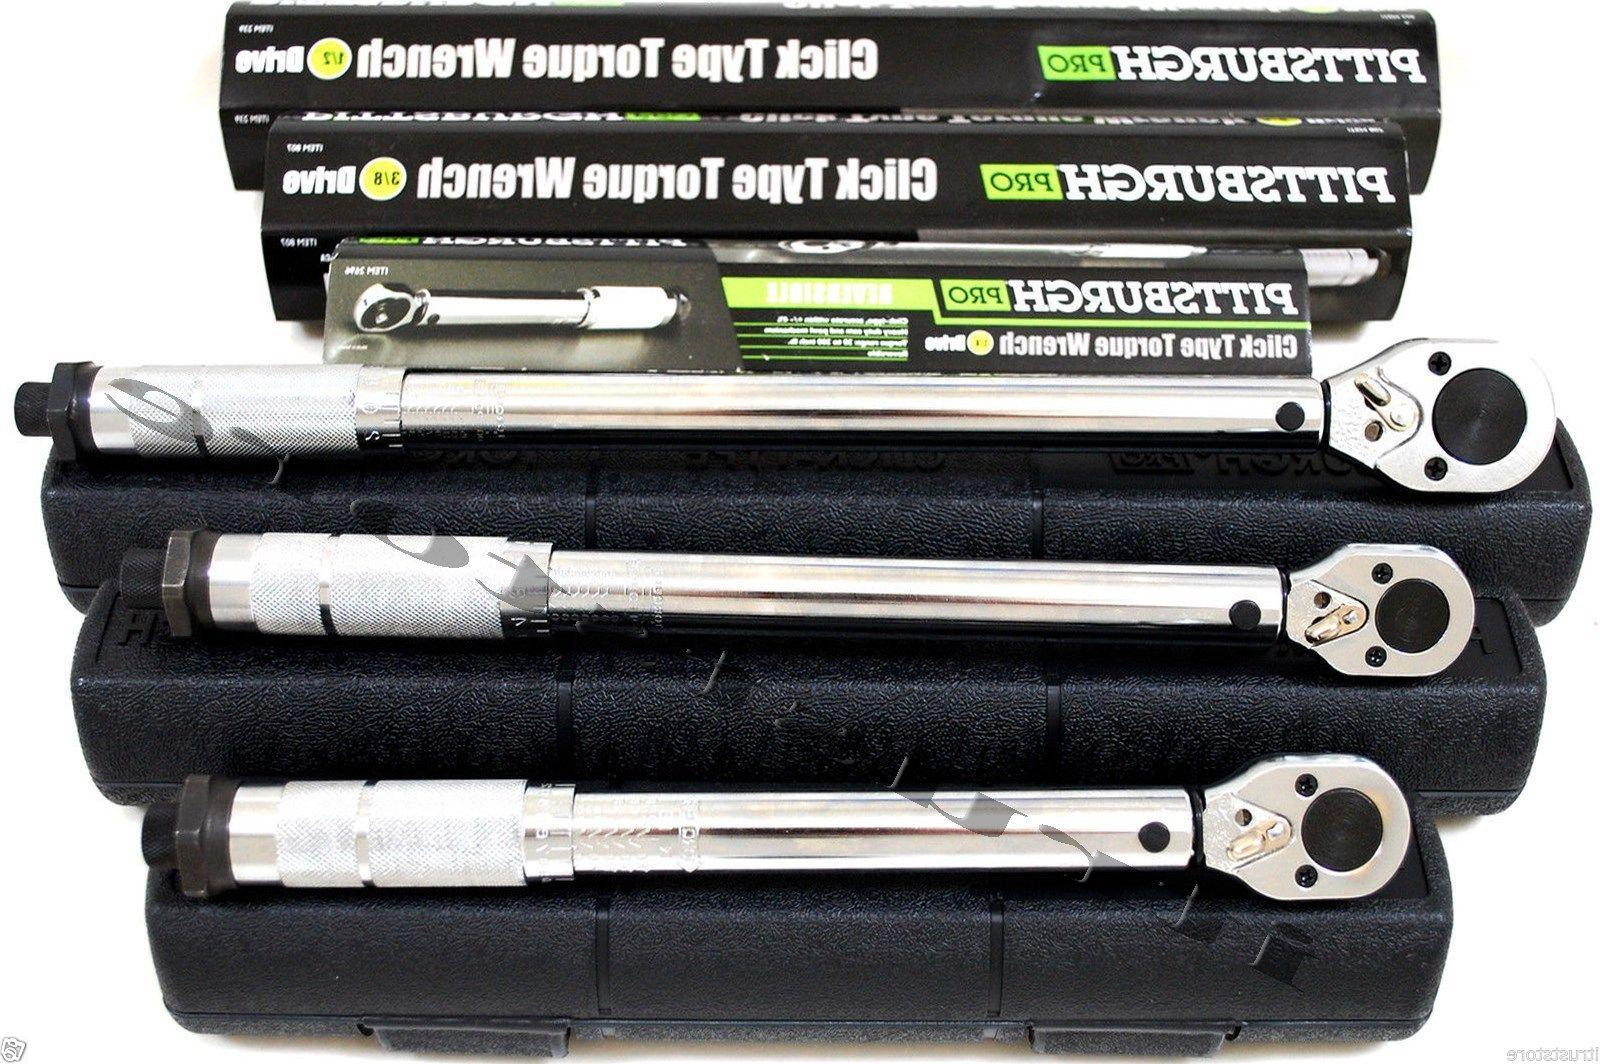 "Pittsburgh Click Stop Torque Wrench 1/2"", 3/8"", 1/4"" Socket"